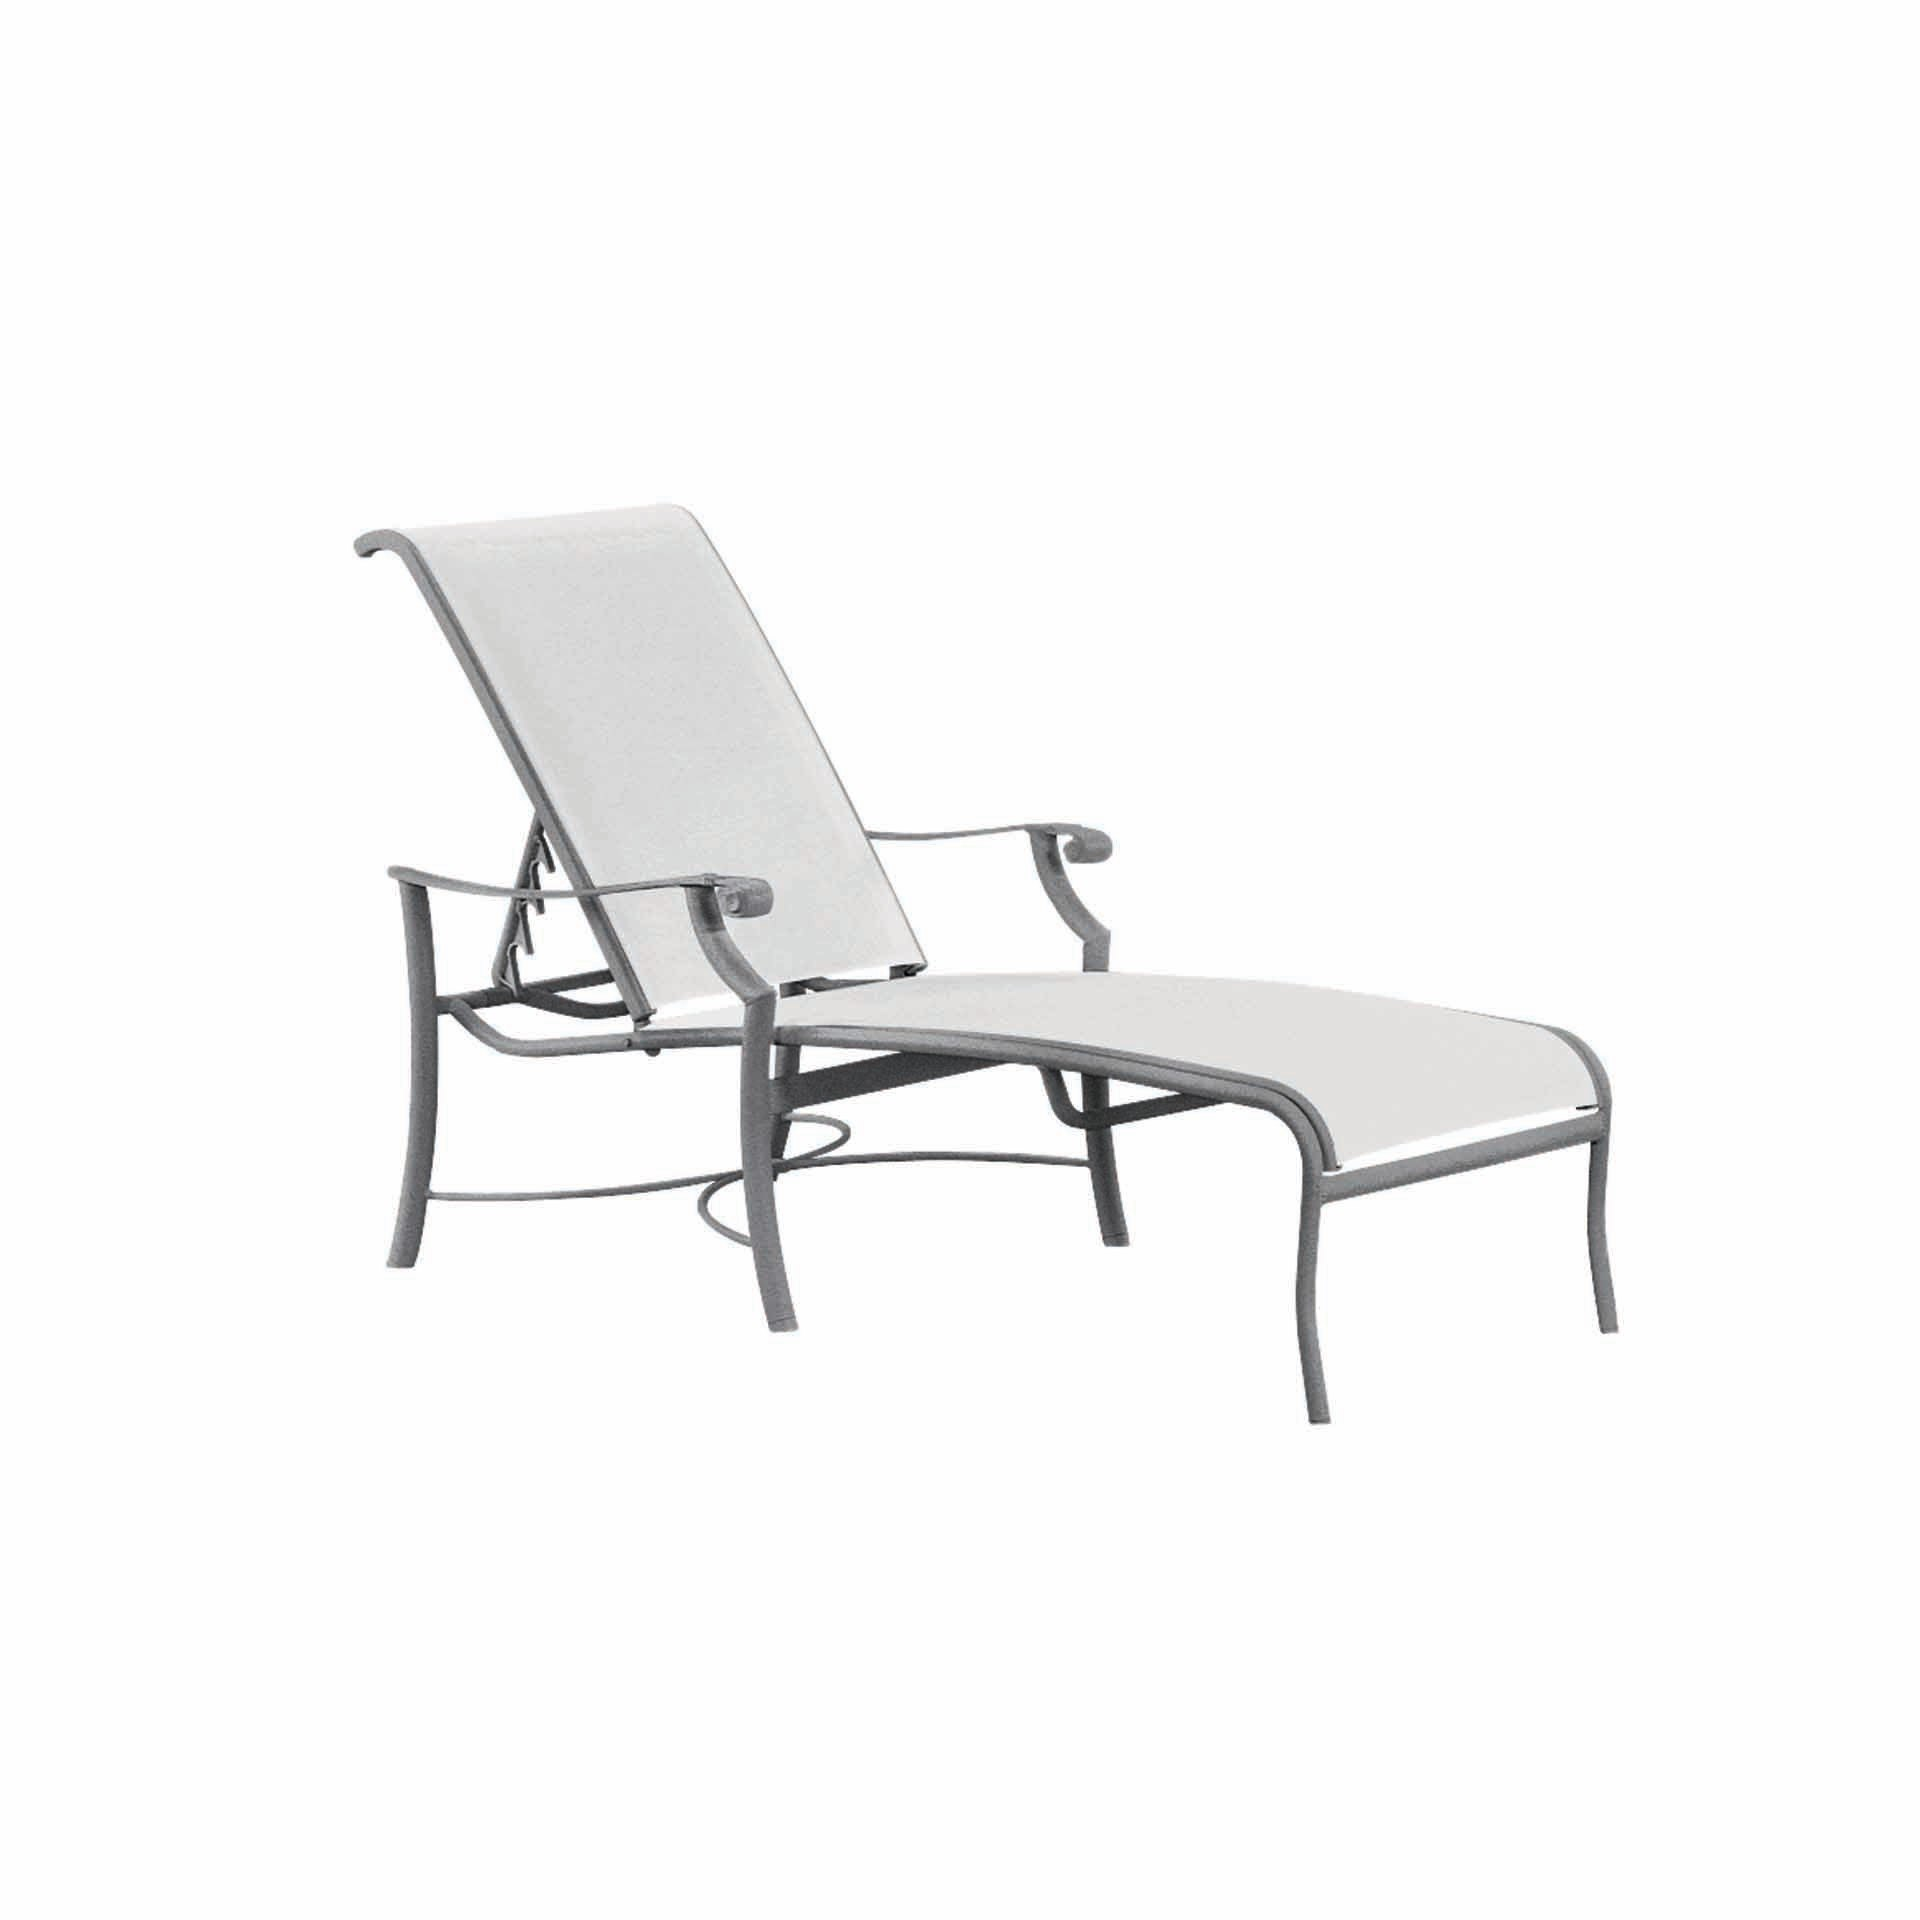 Tropitone montreux sling chaise lounge leisure living for Chaise lounge construction